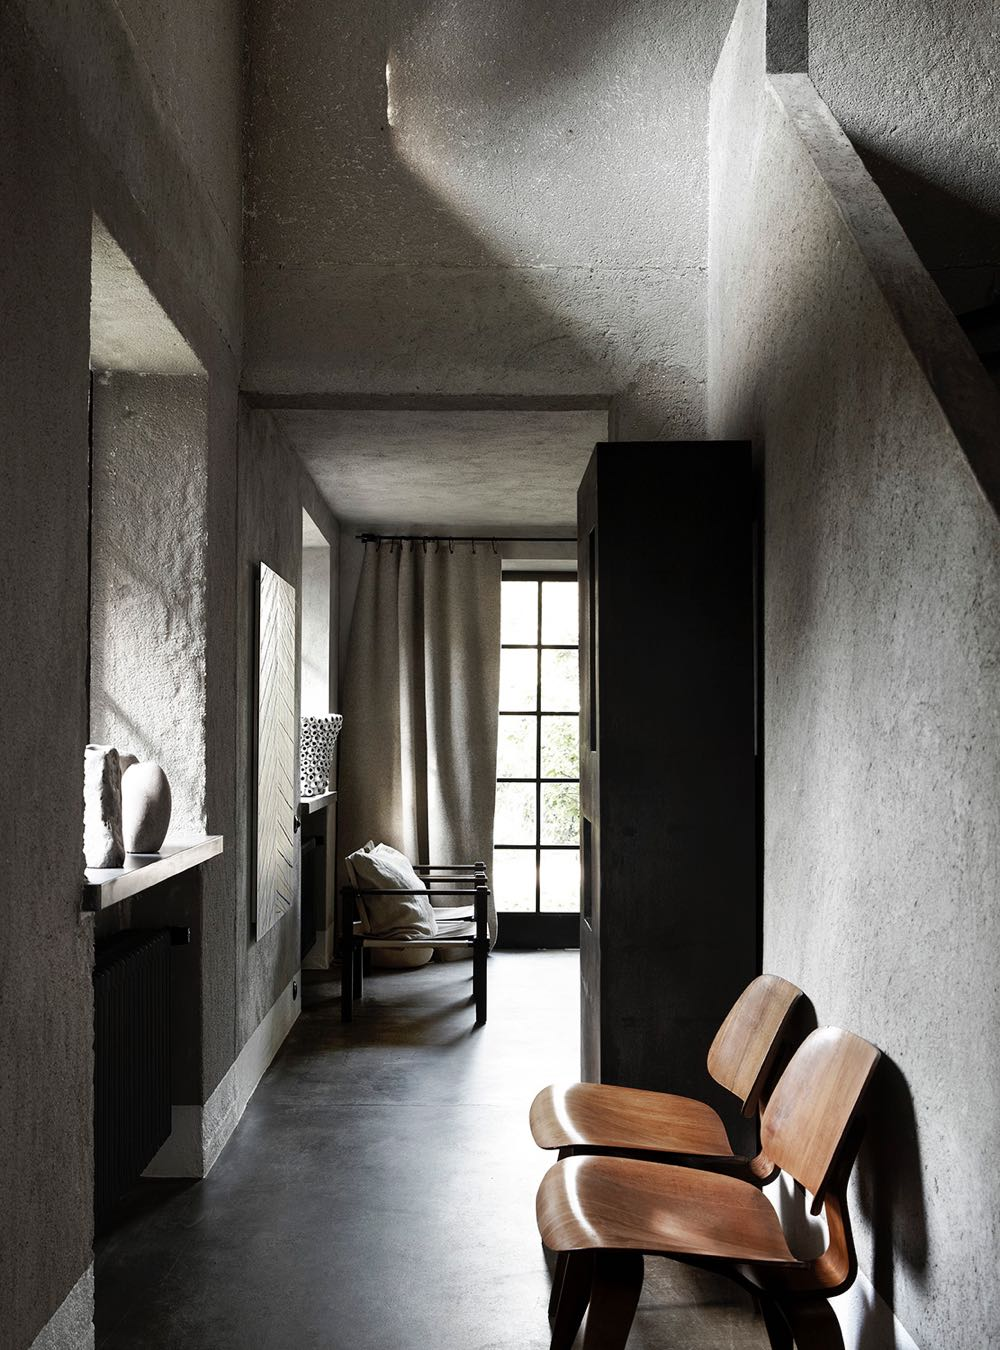 The hallway of Bea Mombaers' Knokke home with wonderful side light that emphasises the internal geometry and textured walls. Photography Sharyn Cairns.